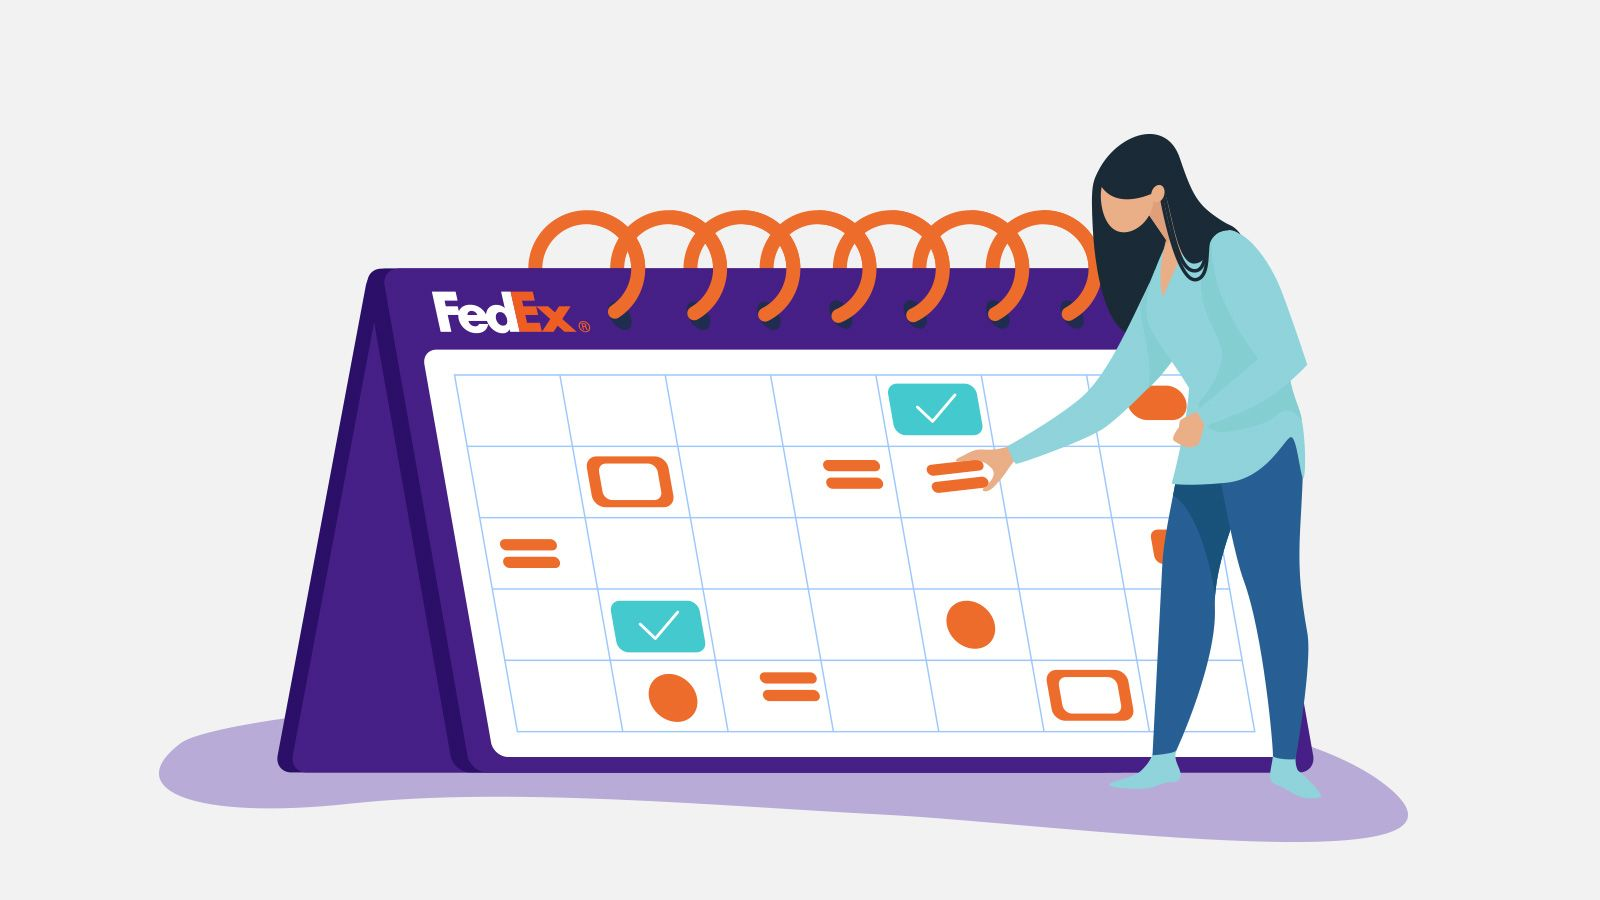 FedEx Holiday Schedule 2020: The Dates You Need to Know